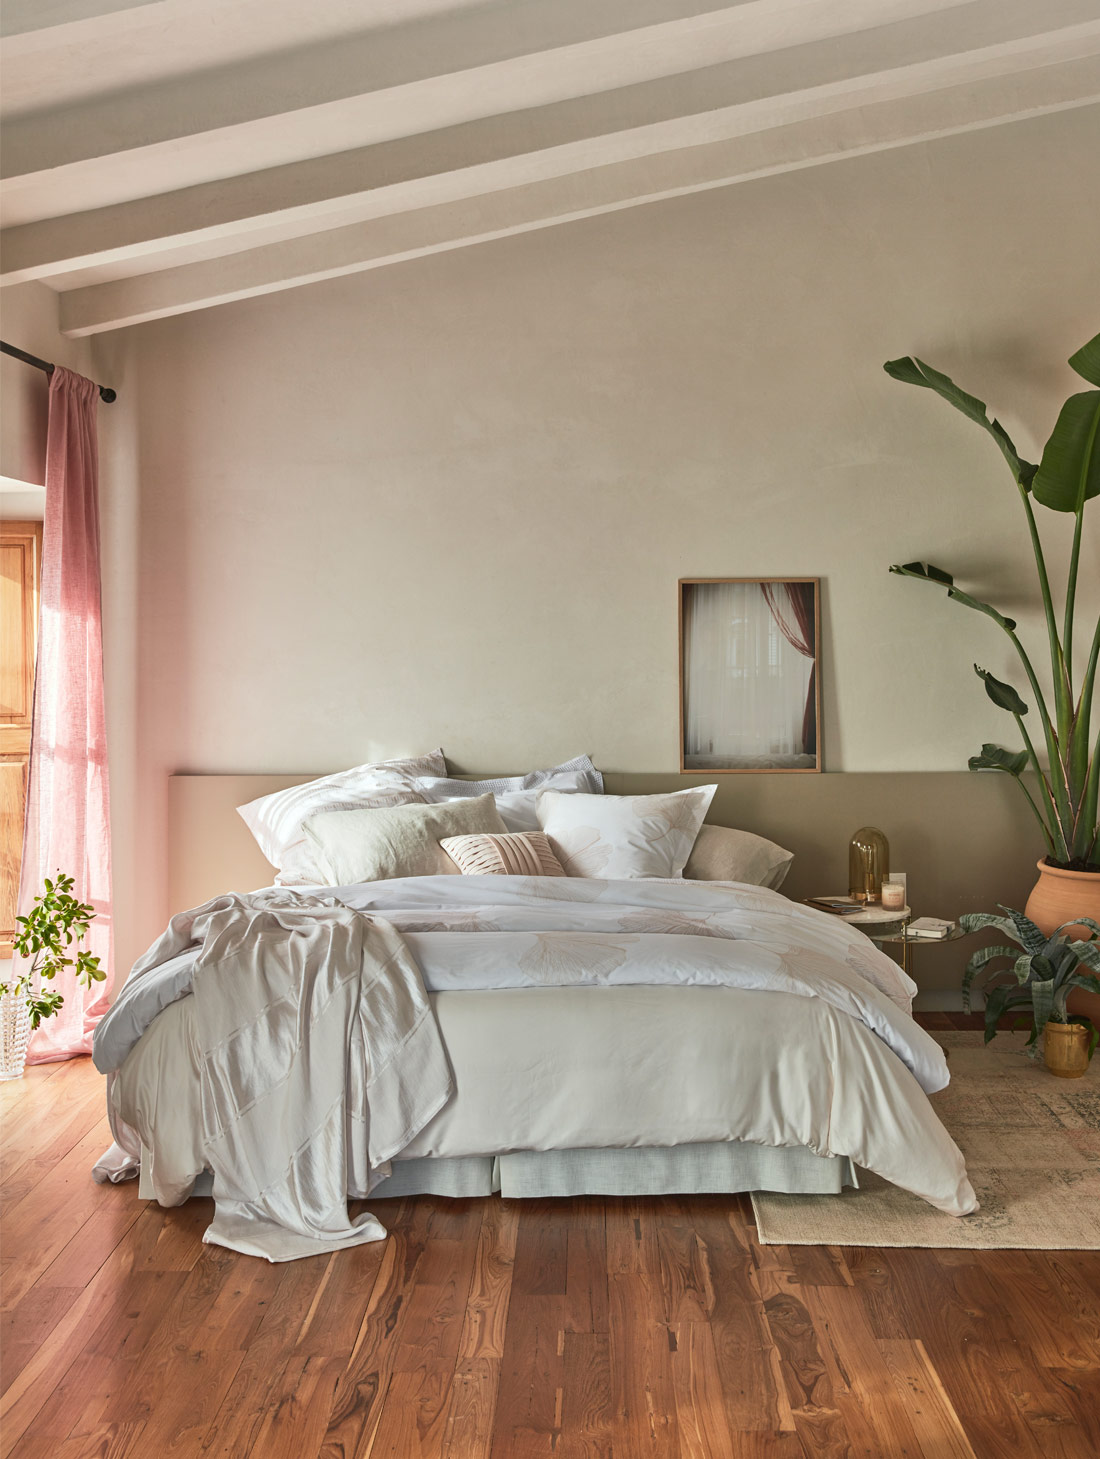 Zara Just Released Its Spring Home Decor Line—and We're ...